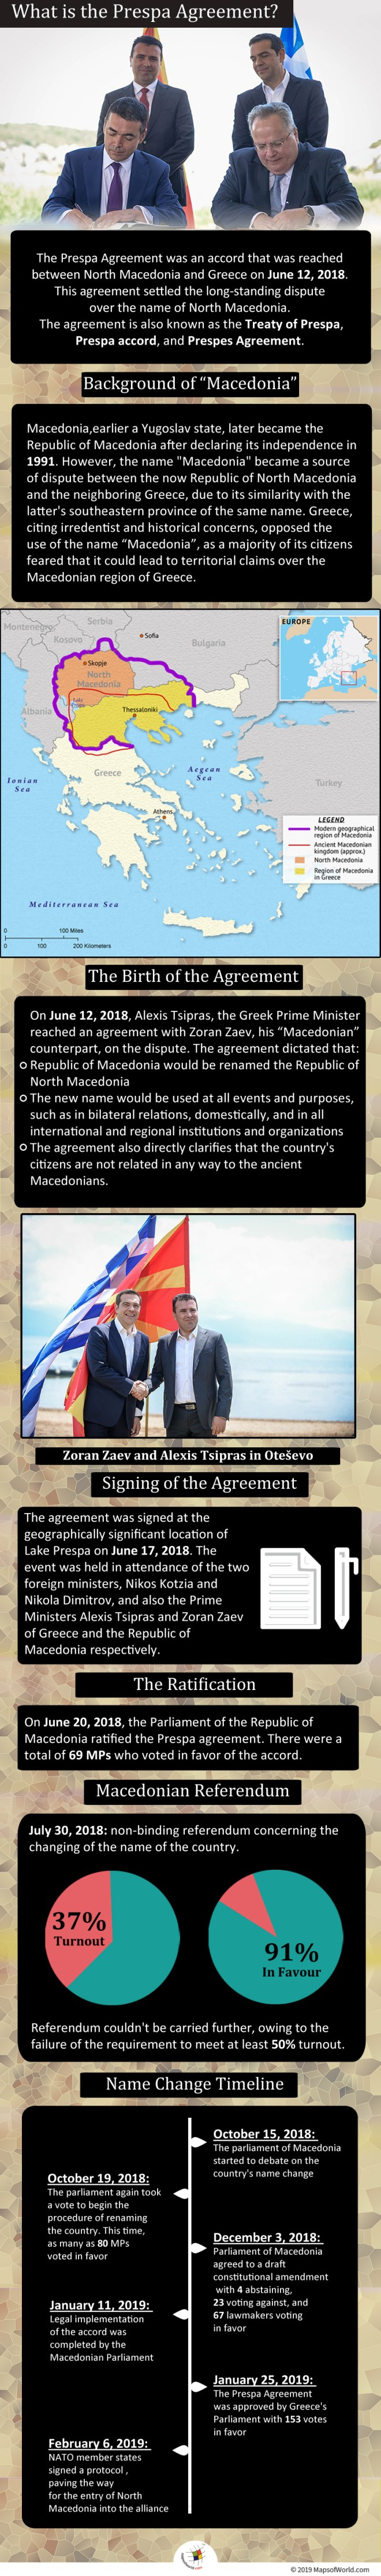 Infographic Giving Details on the Prespa Agreement